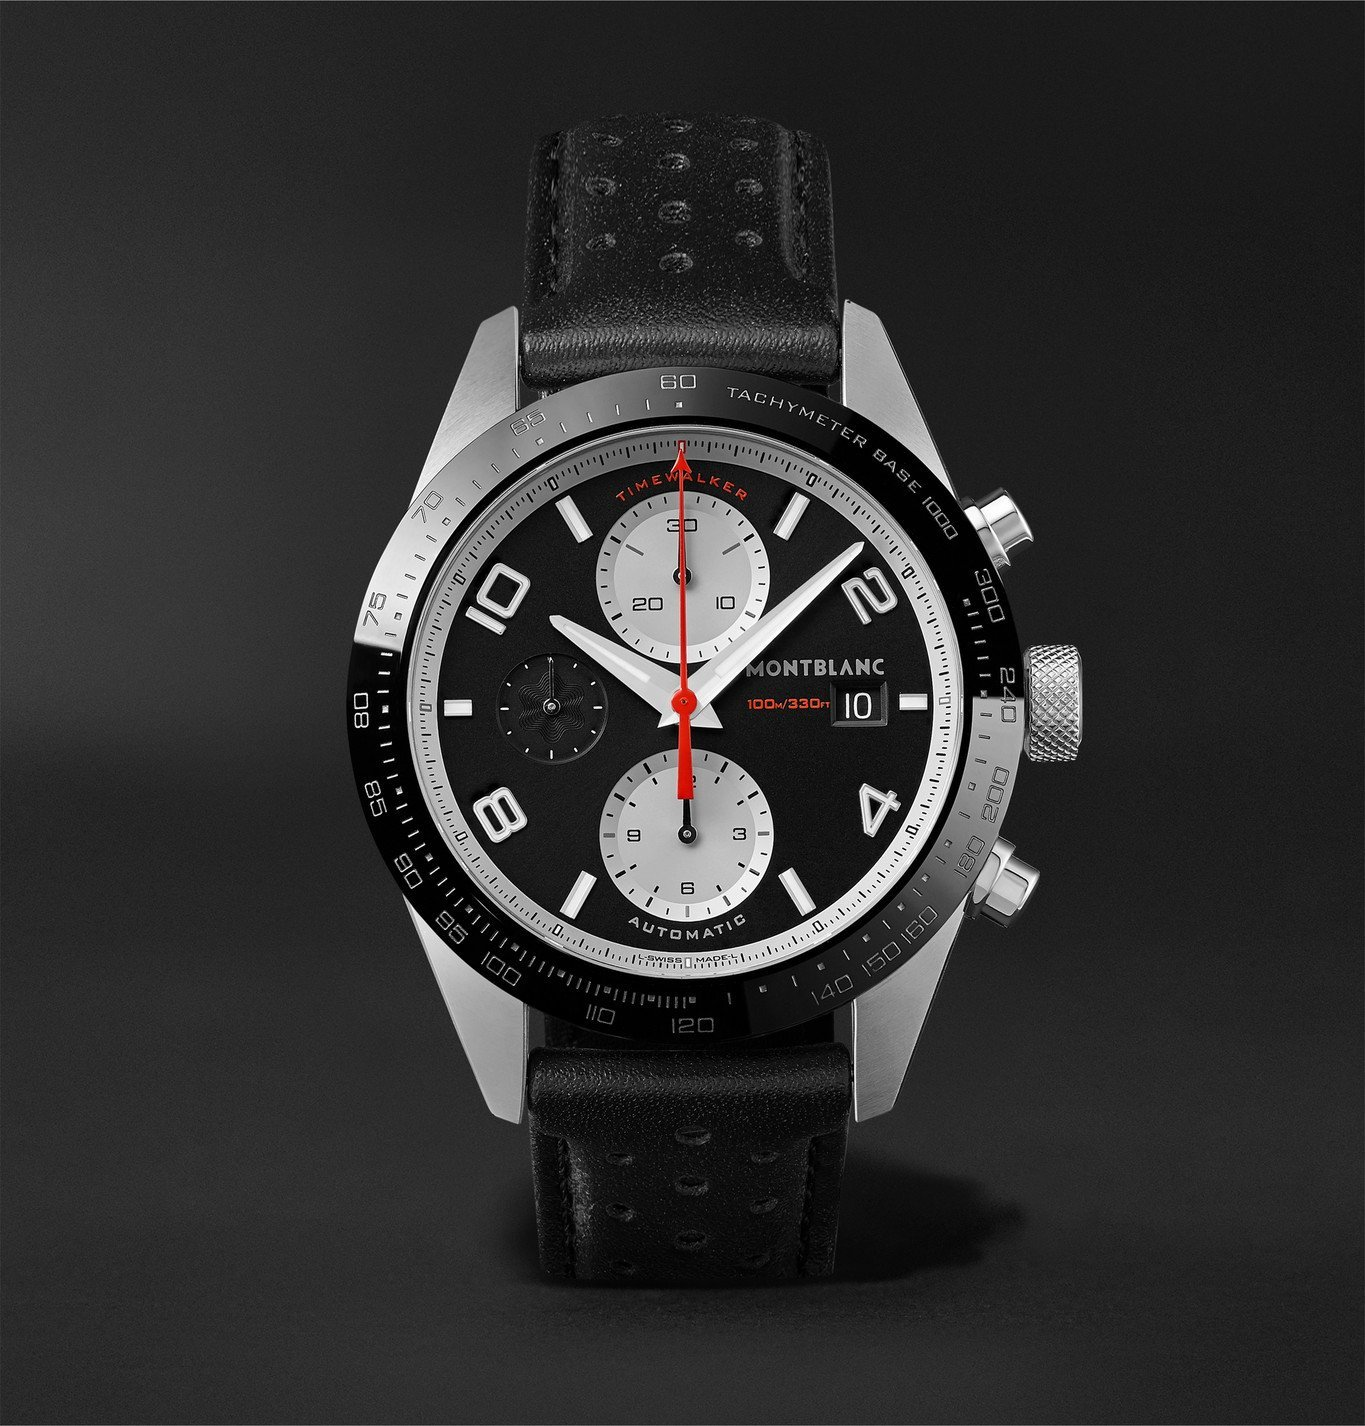 Photo: Montblanc - TimeWalker Automatic Chronograph 41mm Stainless Steel, Ceramic and Leather Watch, Ref. No. 119941 - Black